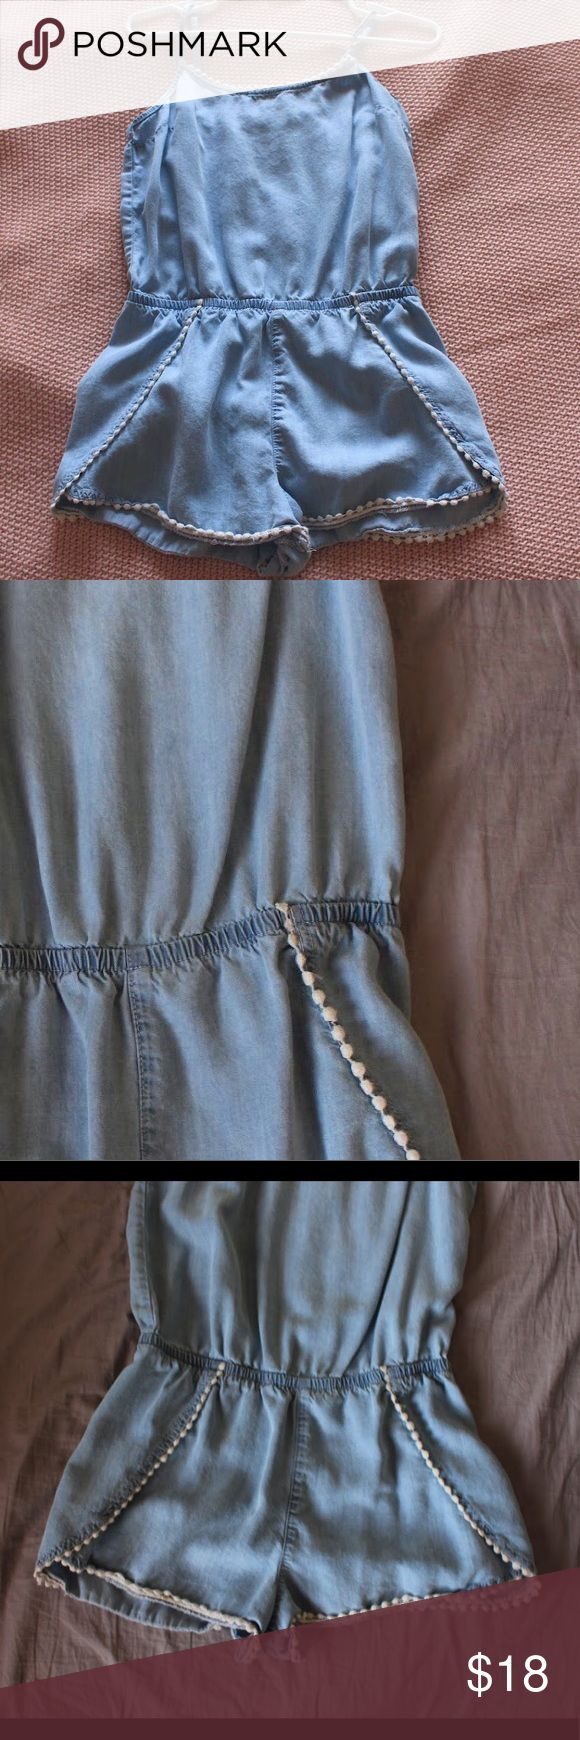 Garage Jean Romper Light jean romper with cute cream embroidery. Worn once and in great condition! Super comfortable and great for hot days! Garage Other